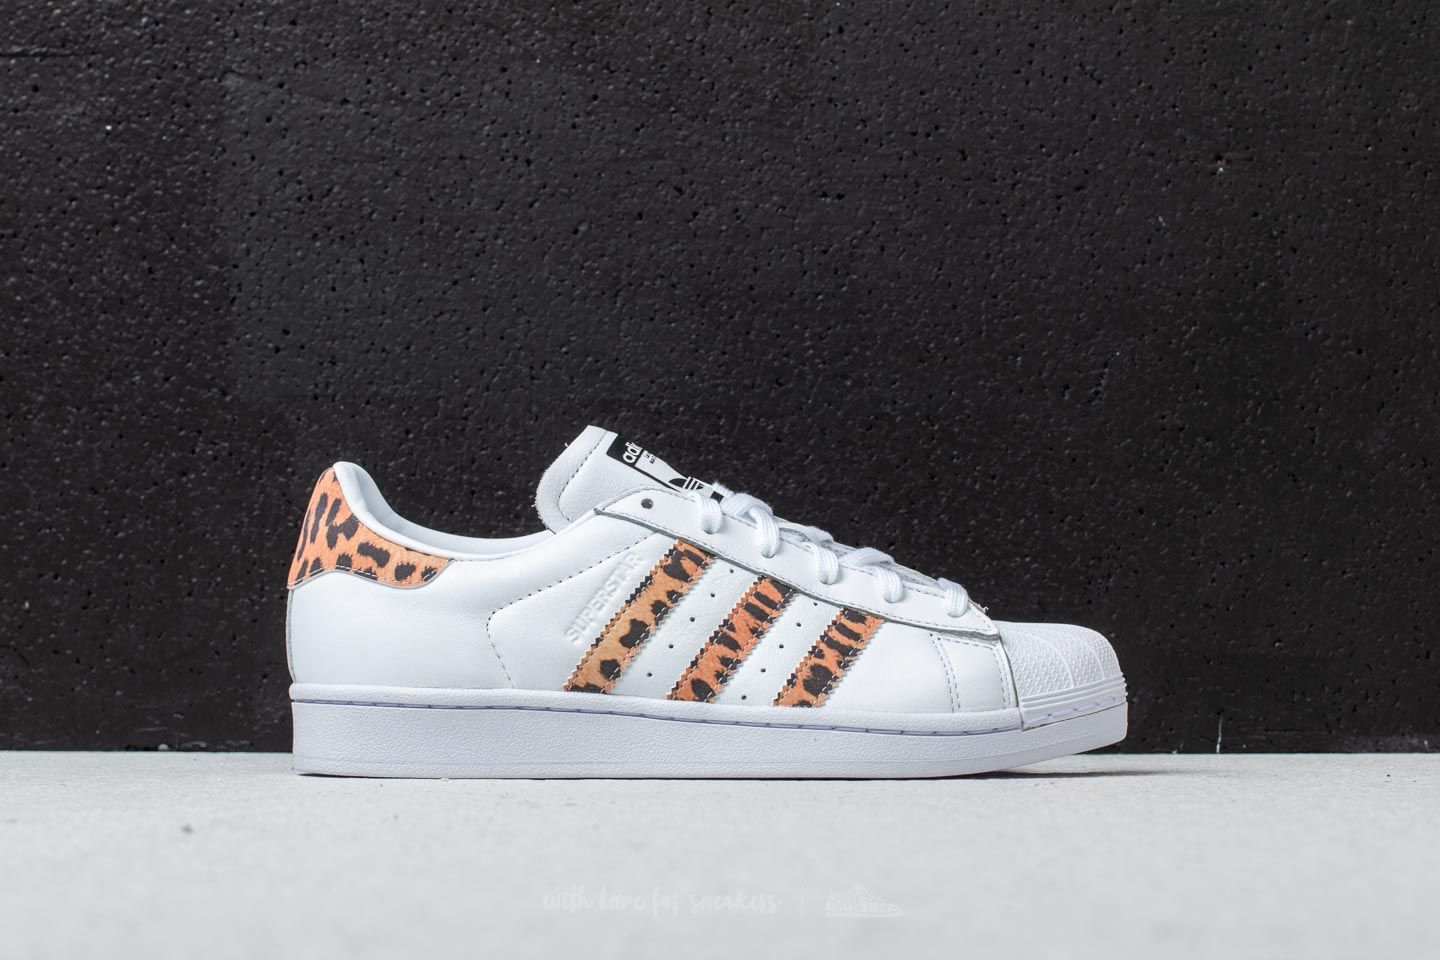 separation shoes 0d30c 35f9d adidas Superstar W Ftw White  Supplier Colour  Core Black at a great price  88